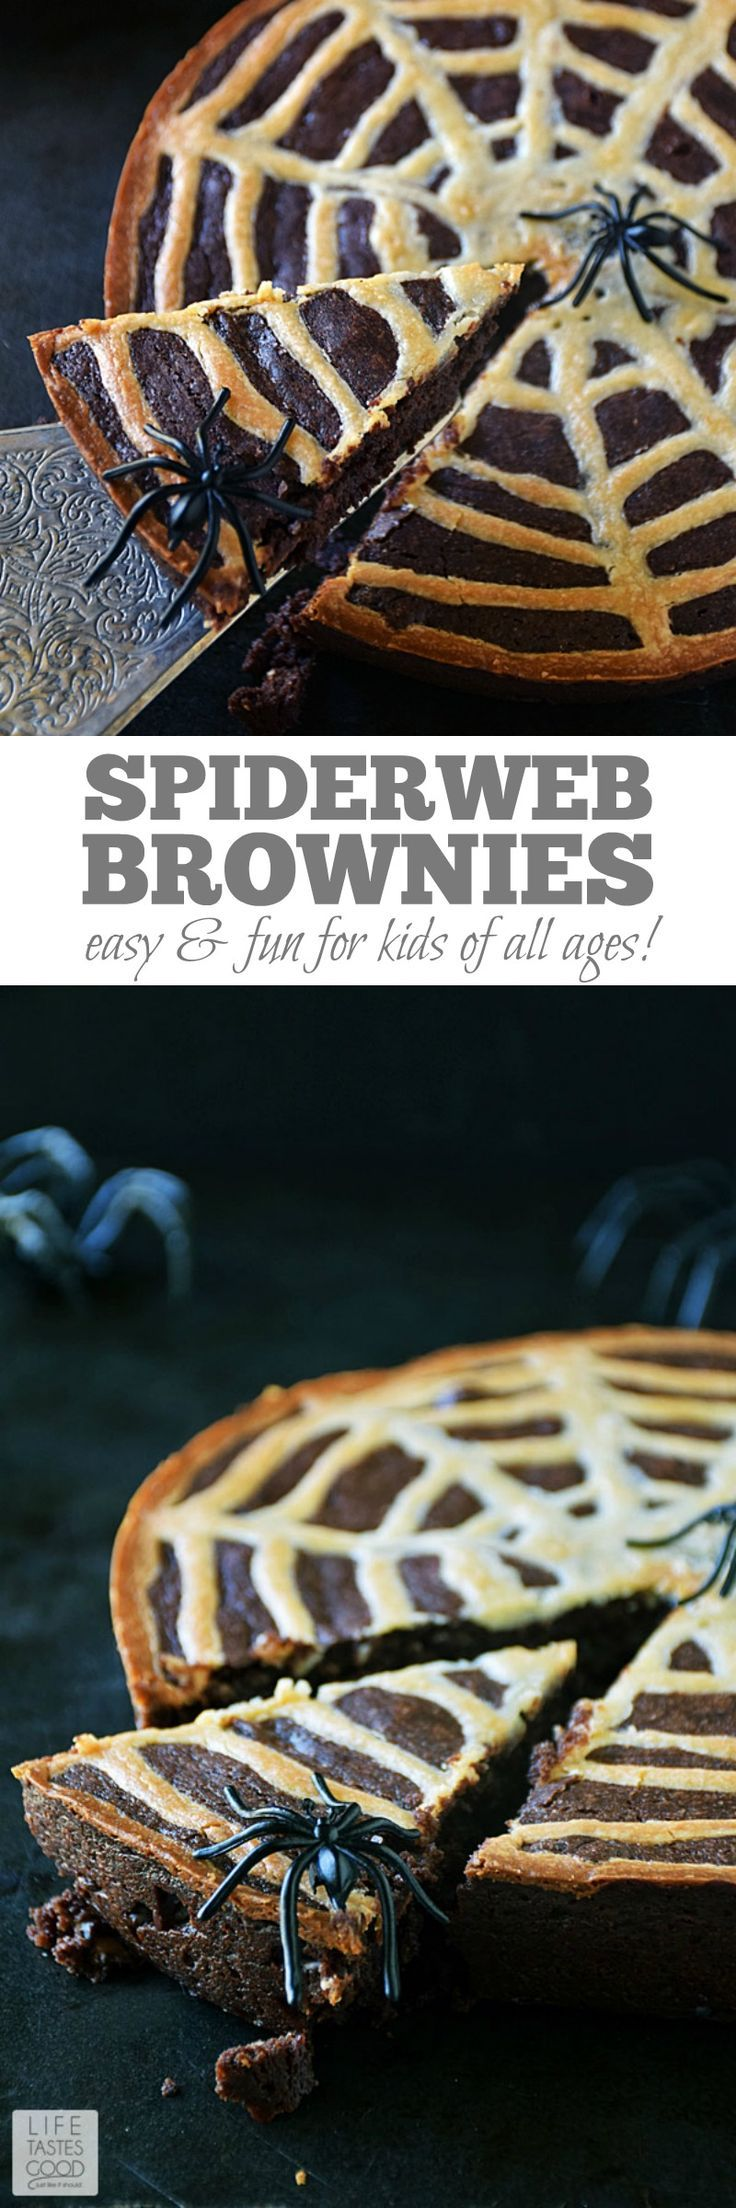 Spiderweb Brownies   by Life Tastes Good are a fun treat to celebrate Halloween. They are rich and chocolaty with a hint of tang from the cream cheese spiderweb on top, and these brownies are just the right amount of spooky to bring out the smiles. #LTGrecipes #sponsored #SundaySupper @dixiecrystals